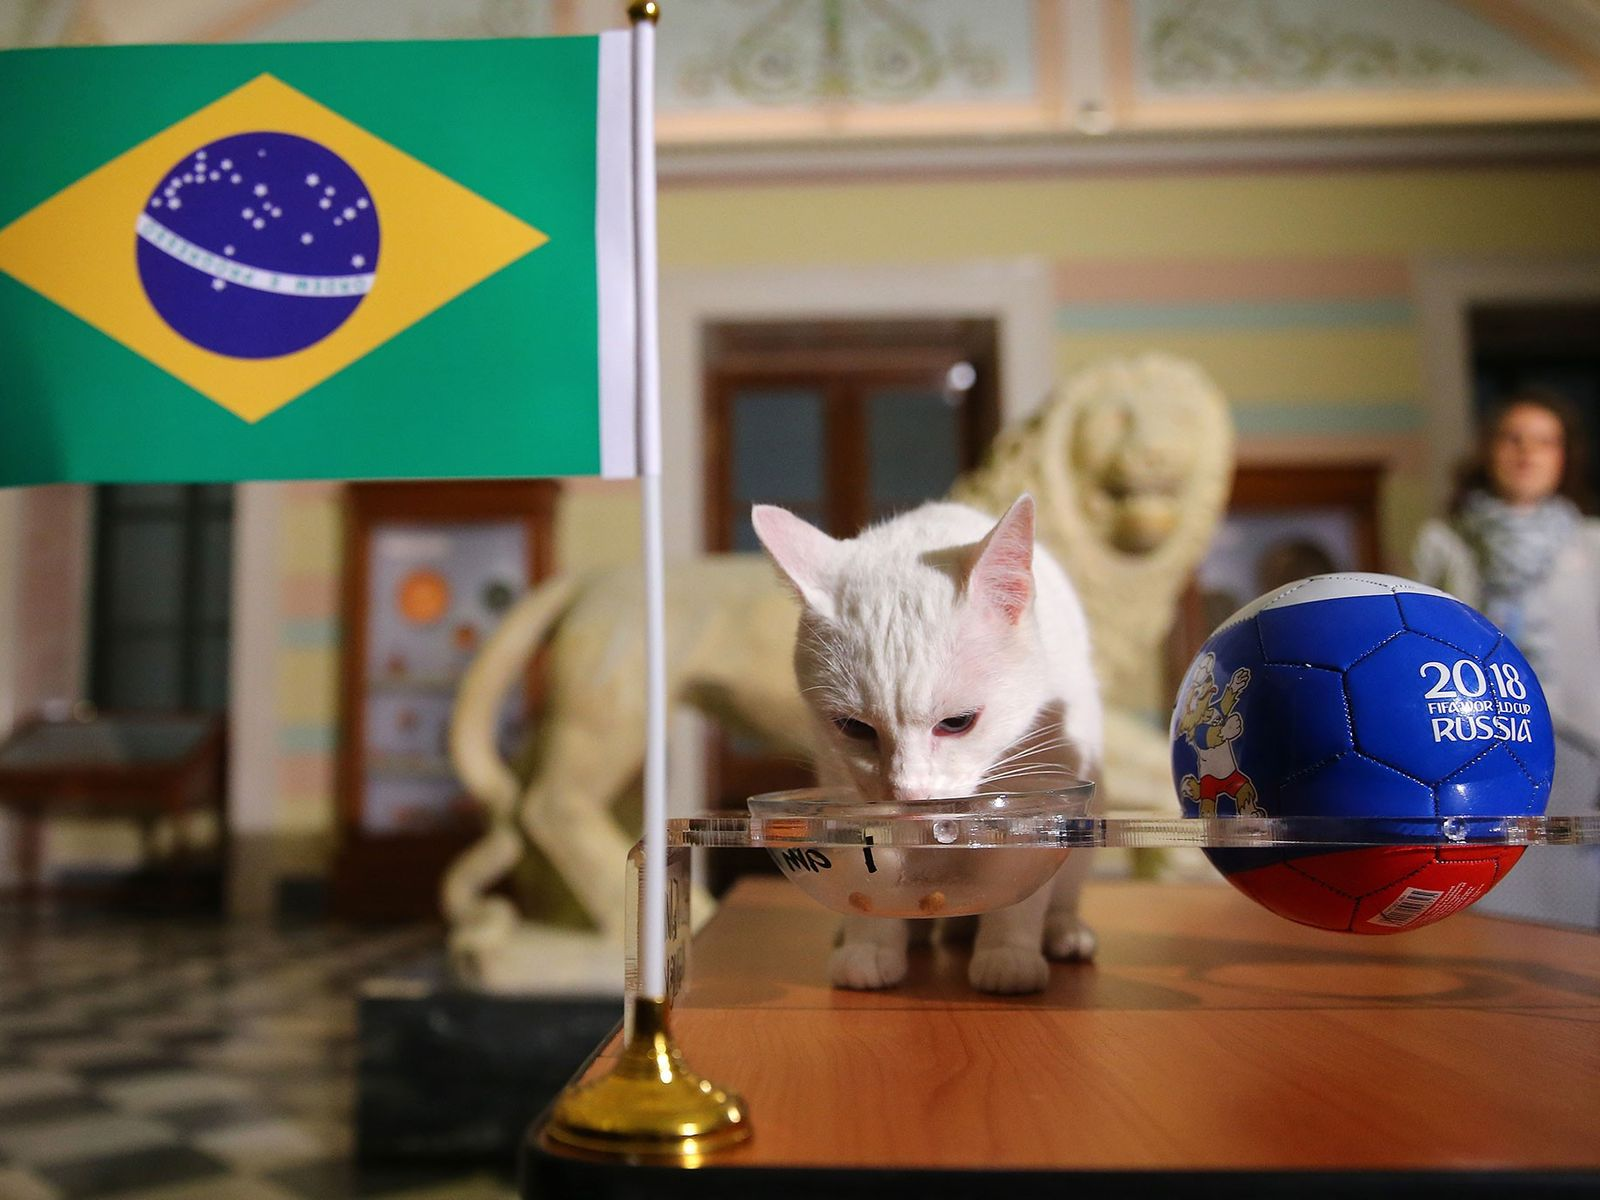 Achilles the Cat, a 2018 FIFA World Cup animal oracle, predicts the result of the match ...